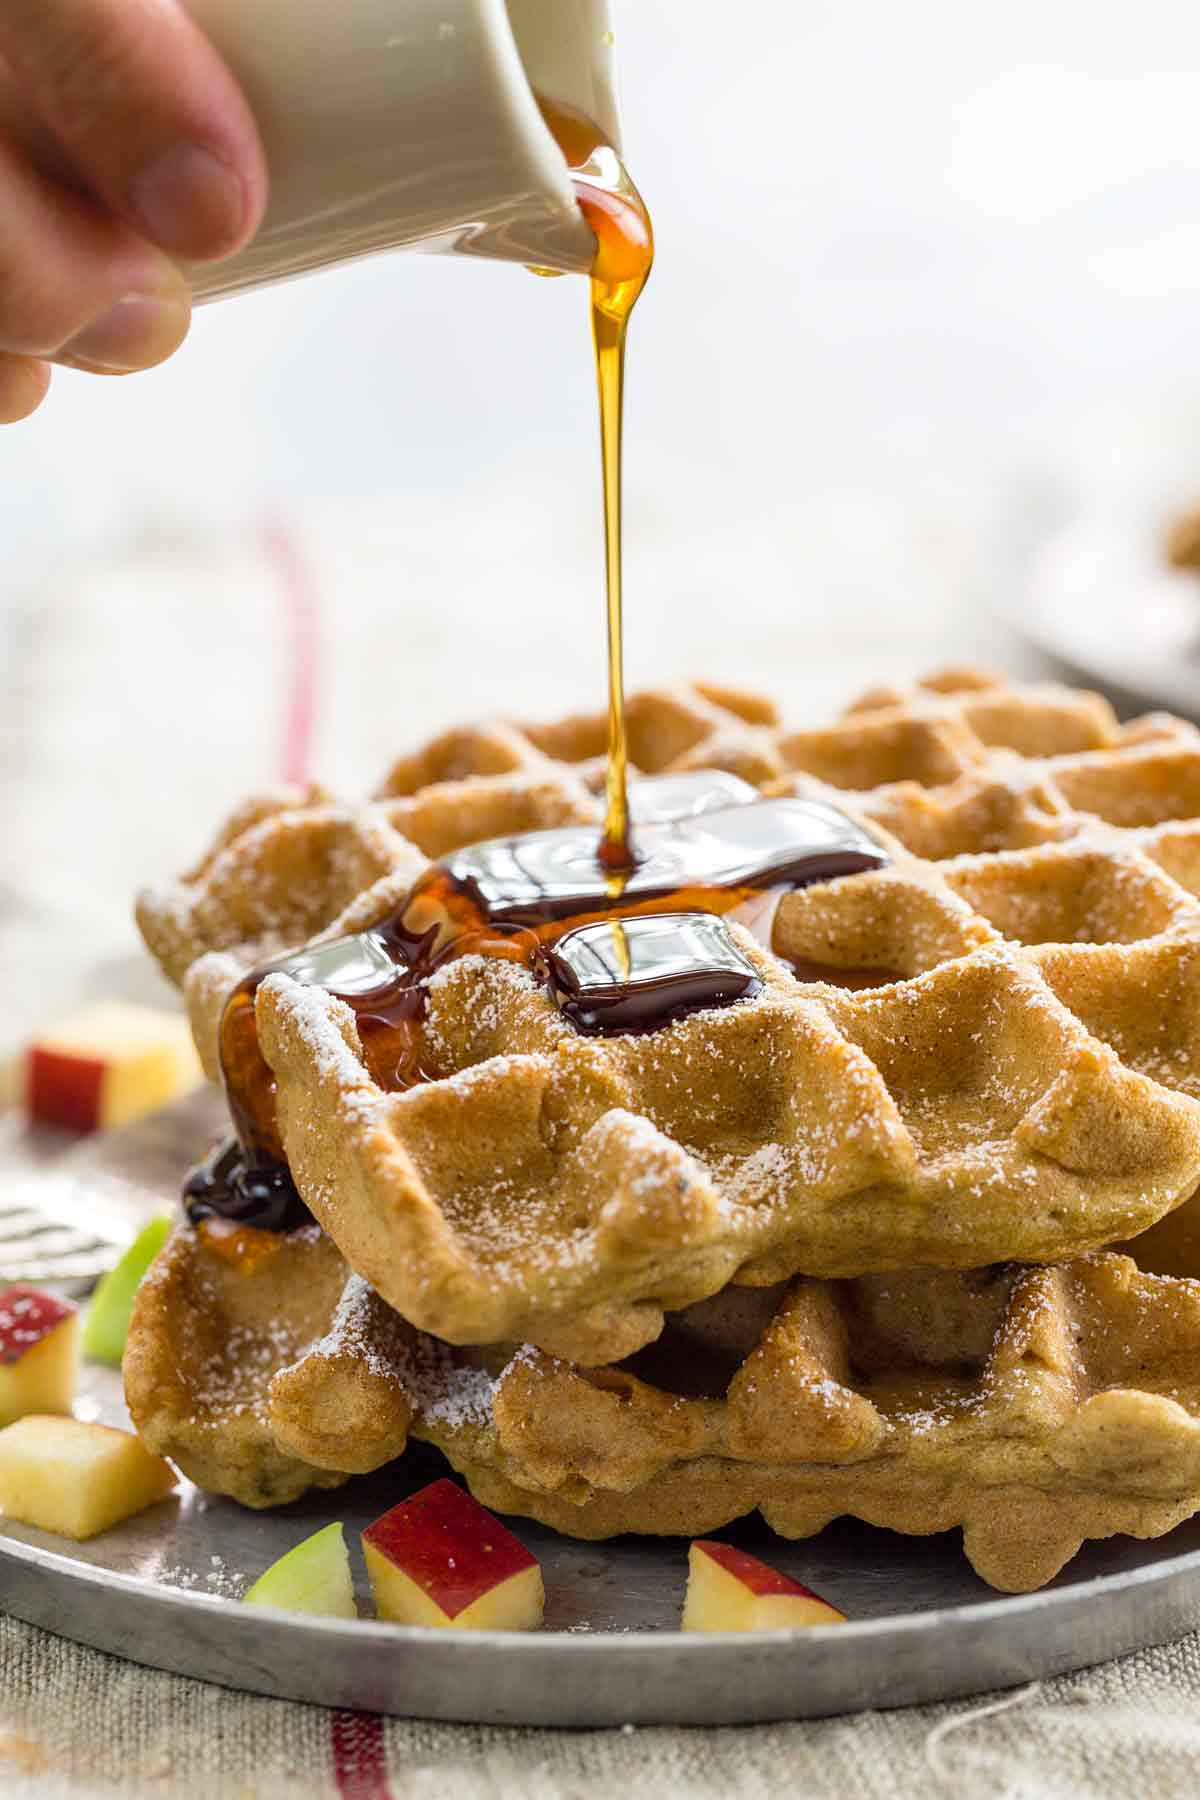 Maple syrup being poured over a stack of gluten free apple cinnamon waffles